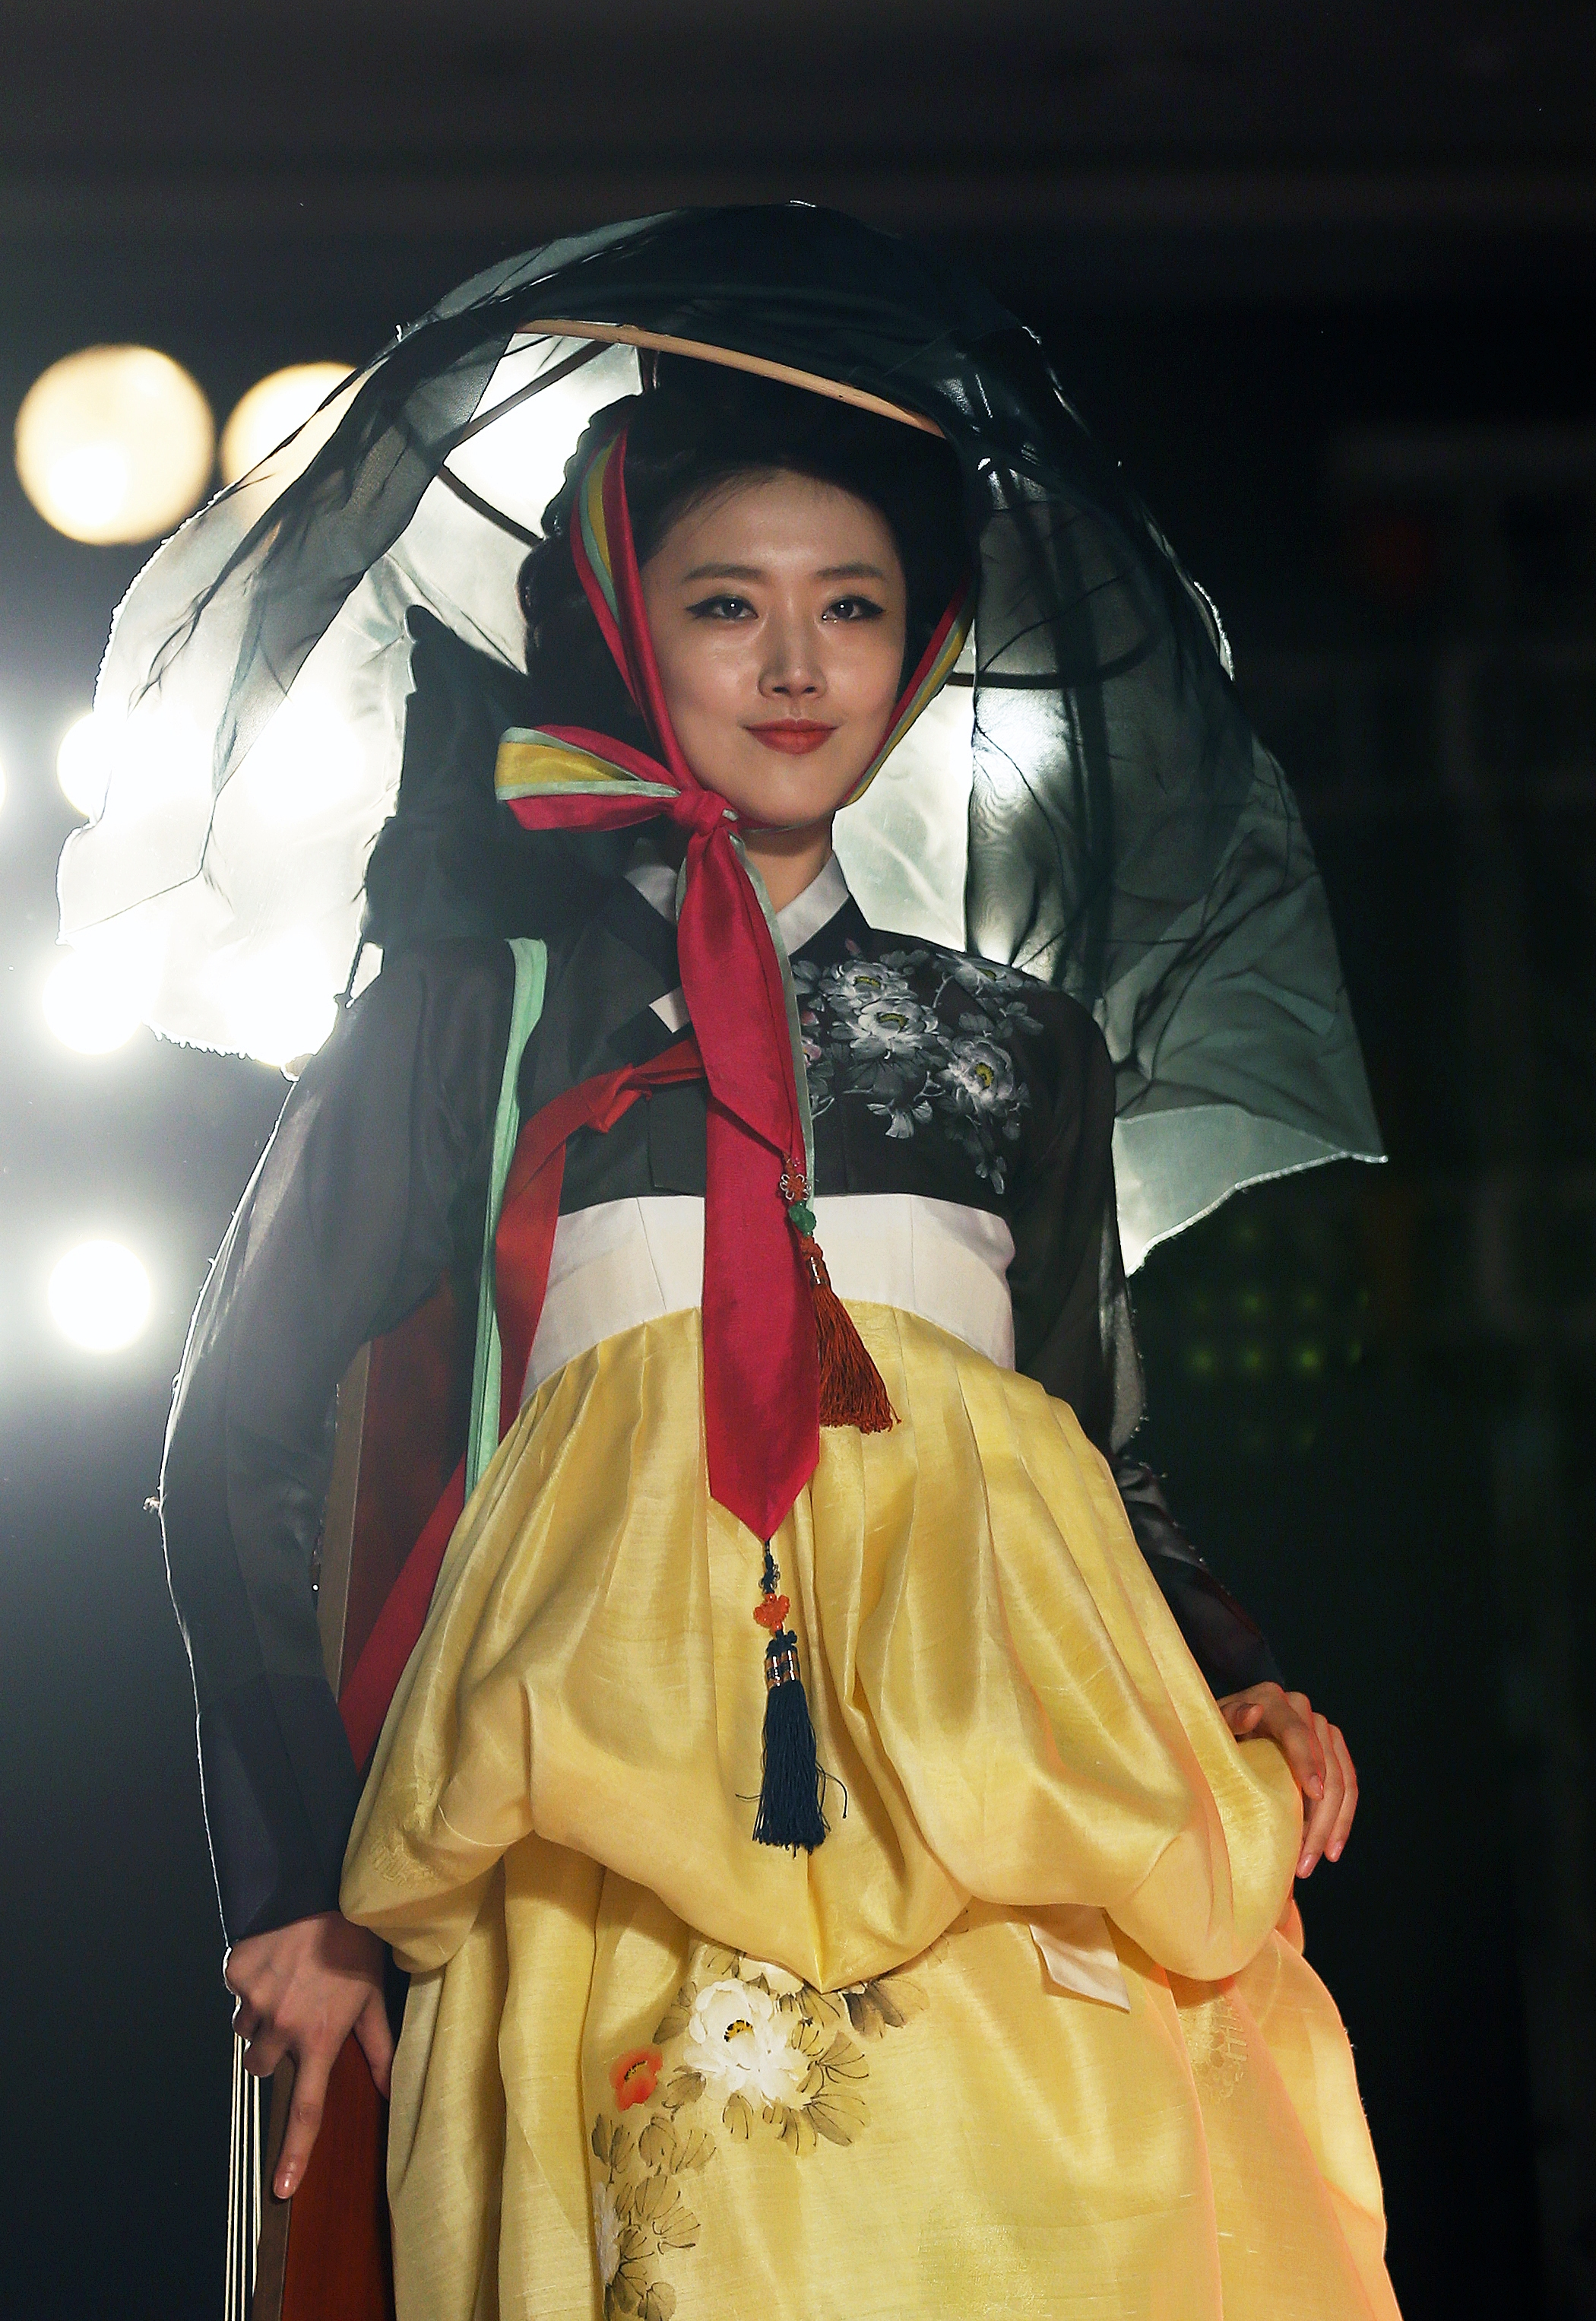 FileKOCIS Korea Hanbok-AoDai FashionShow 27 (9766155131).jpg - Wikimedia Commons